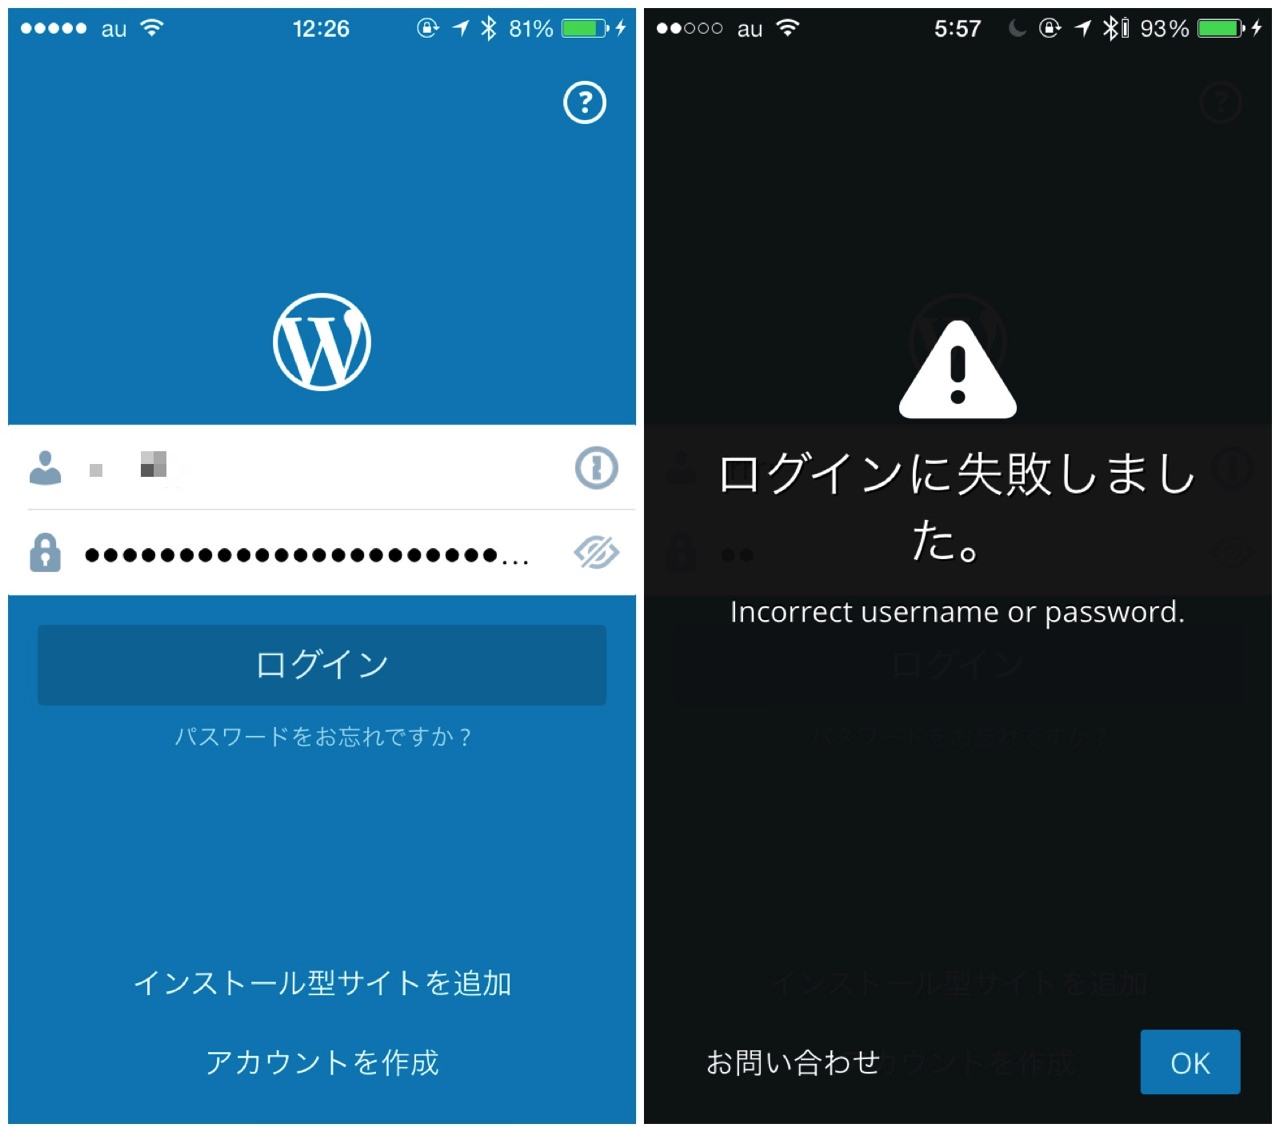 Remedy fail log in iphone app version wordpress3